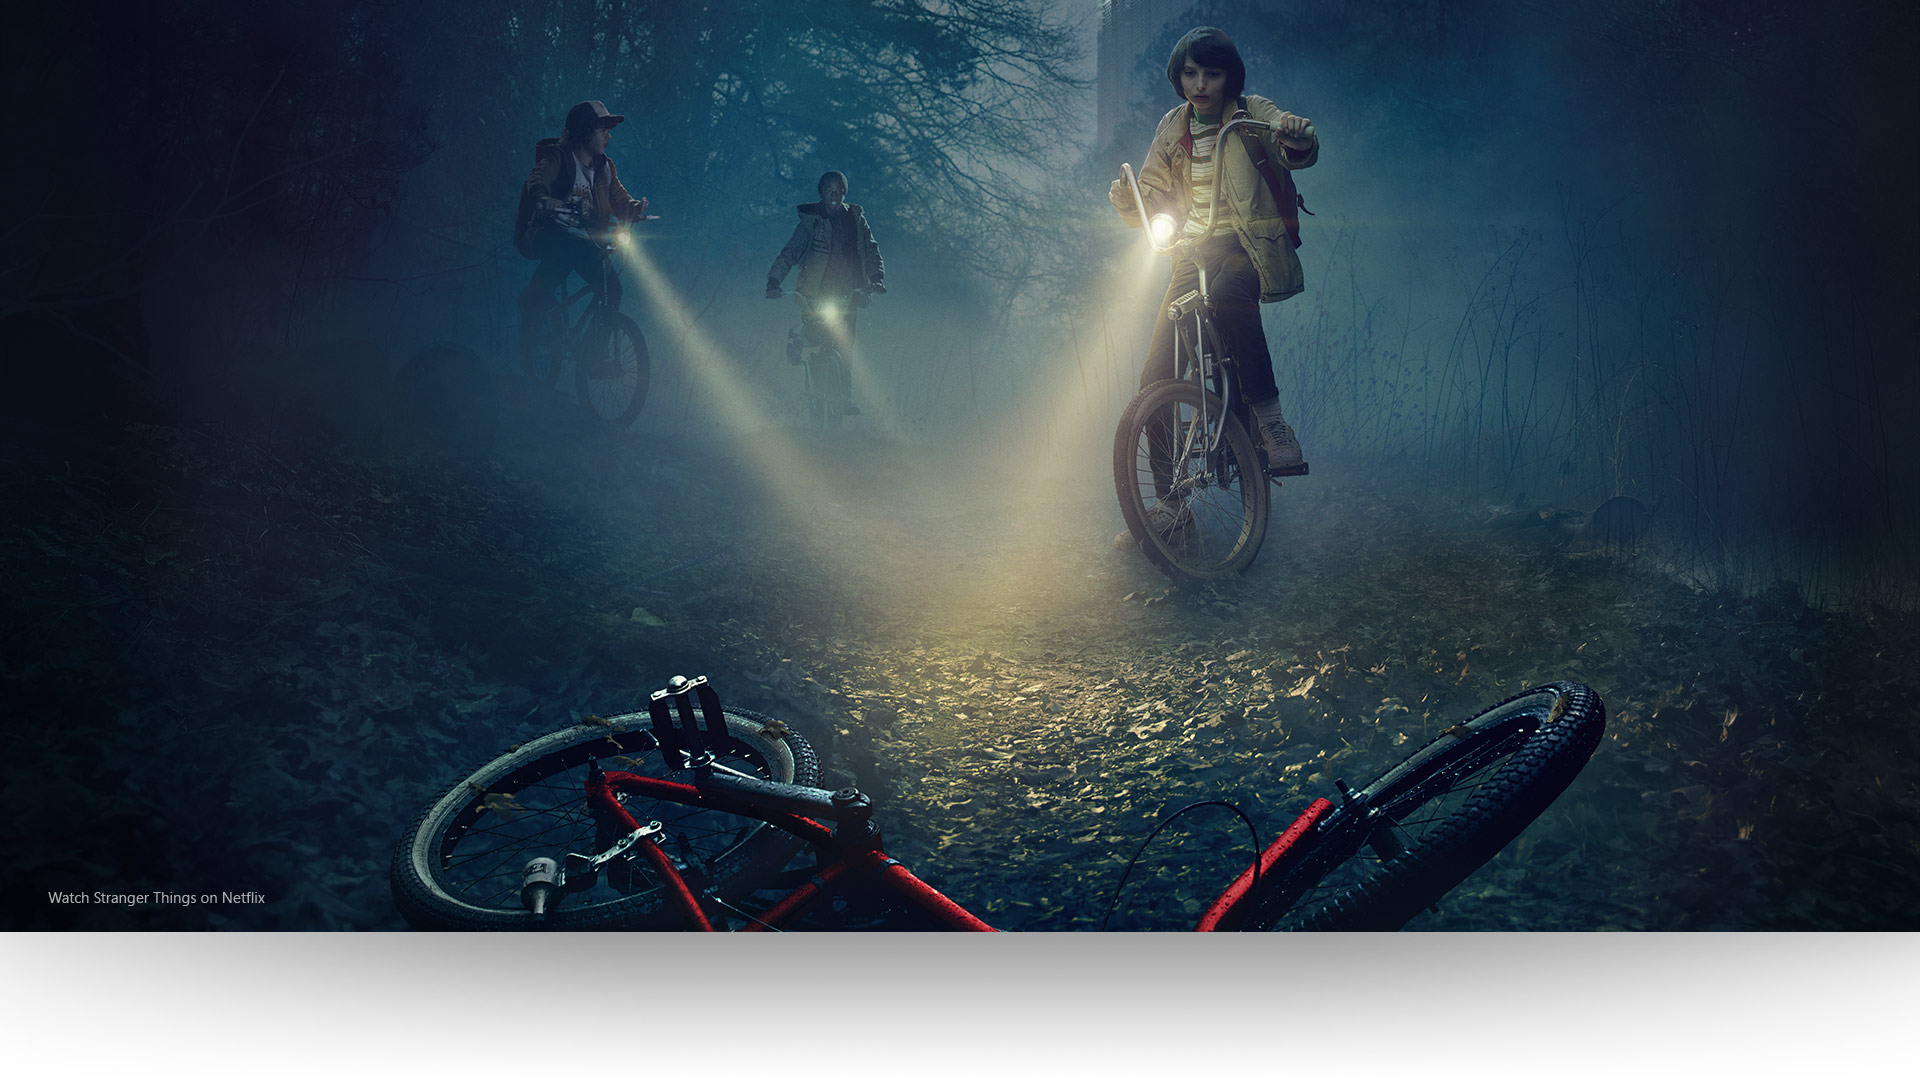 Kids on bikes discover someone's lost bike - Watch Stranger Things on Netflix